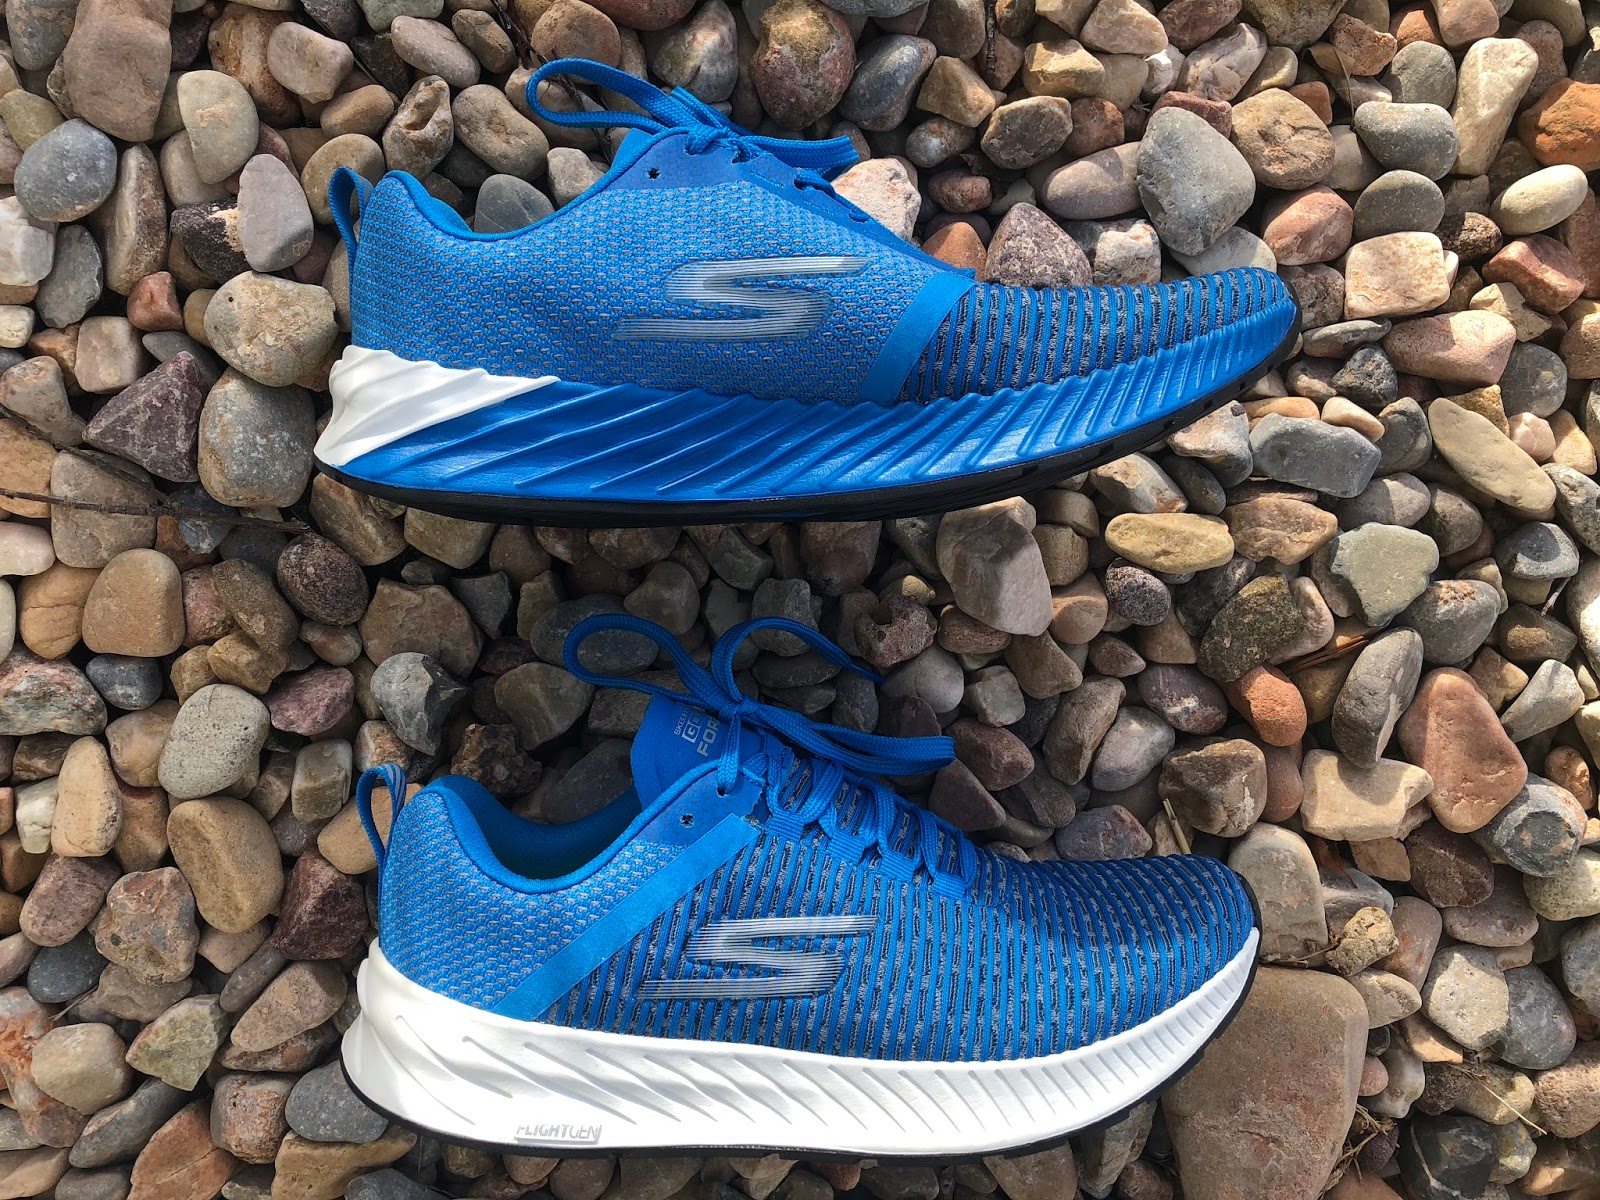 c9bb06685cd2 Road Trail Run  Skechers Performance GO Run Forza 3 Review  Seamless ...